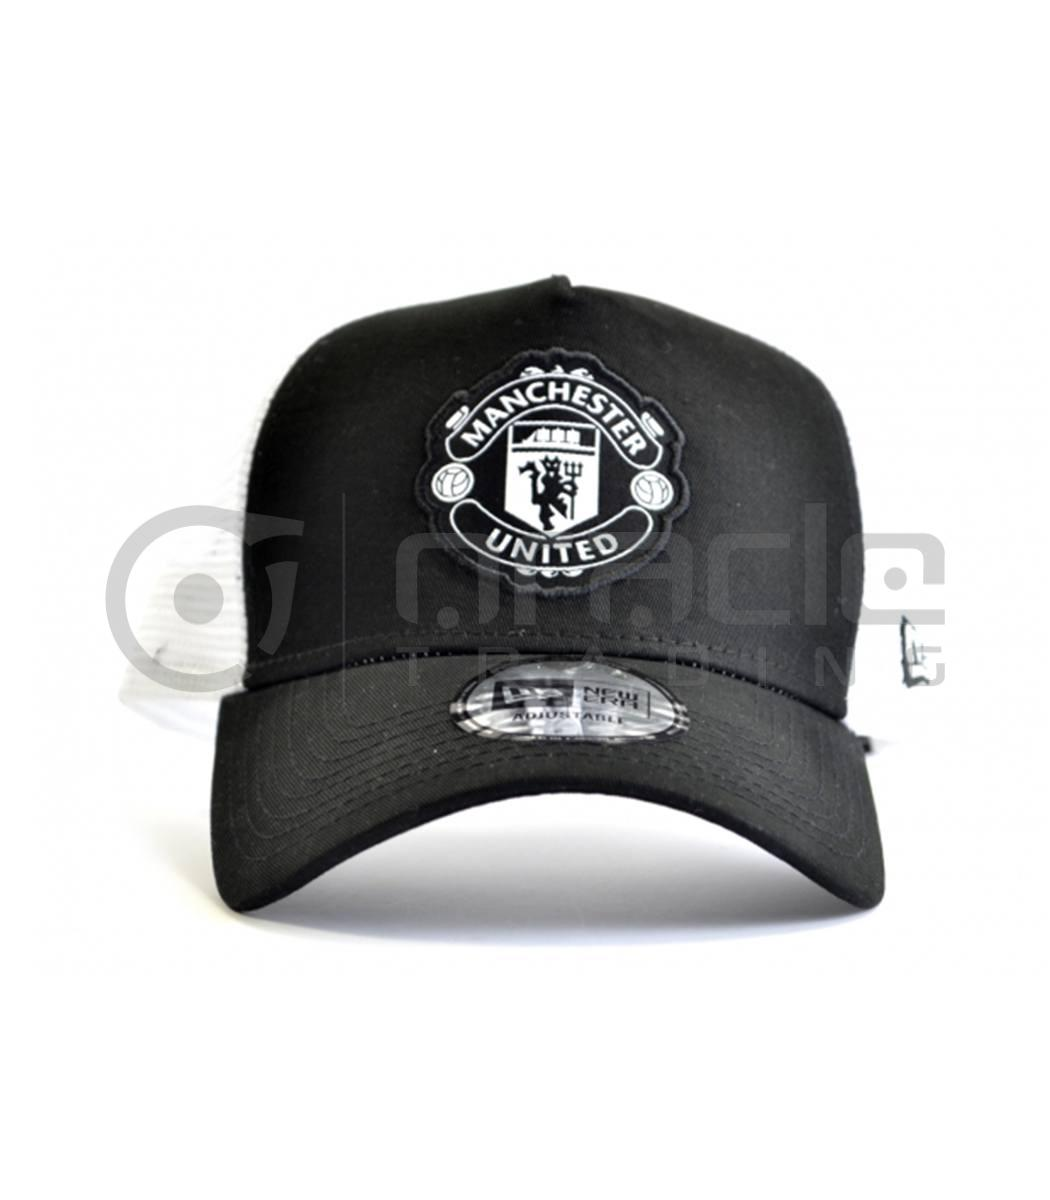 12a80e7c6 Manchester United Black & White Crest Hat - New Era